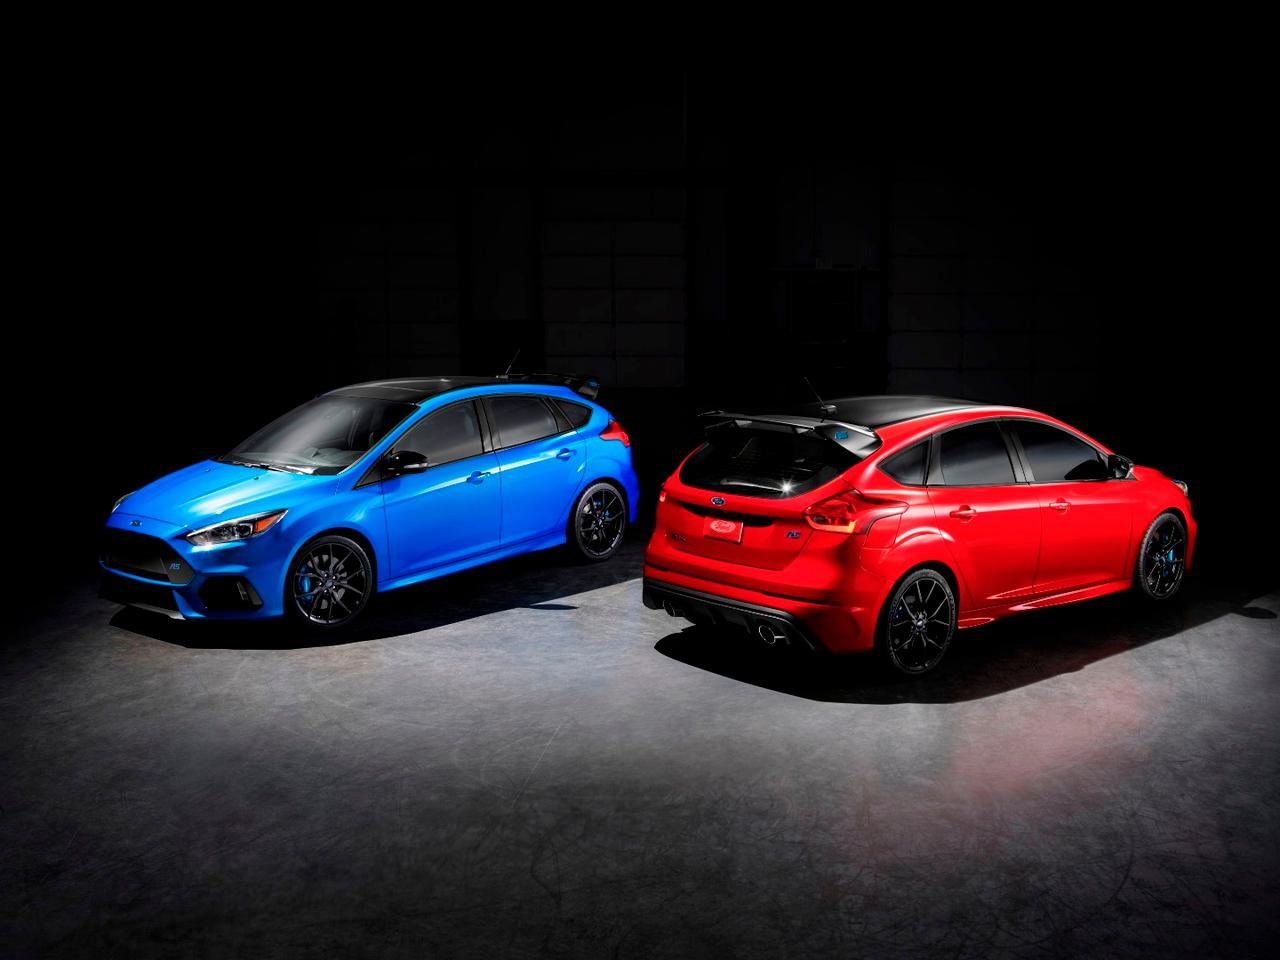 Race Red is being offered on the Focus RS for the first time